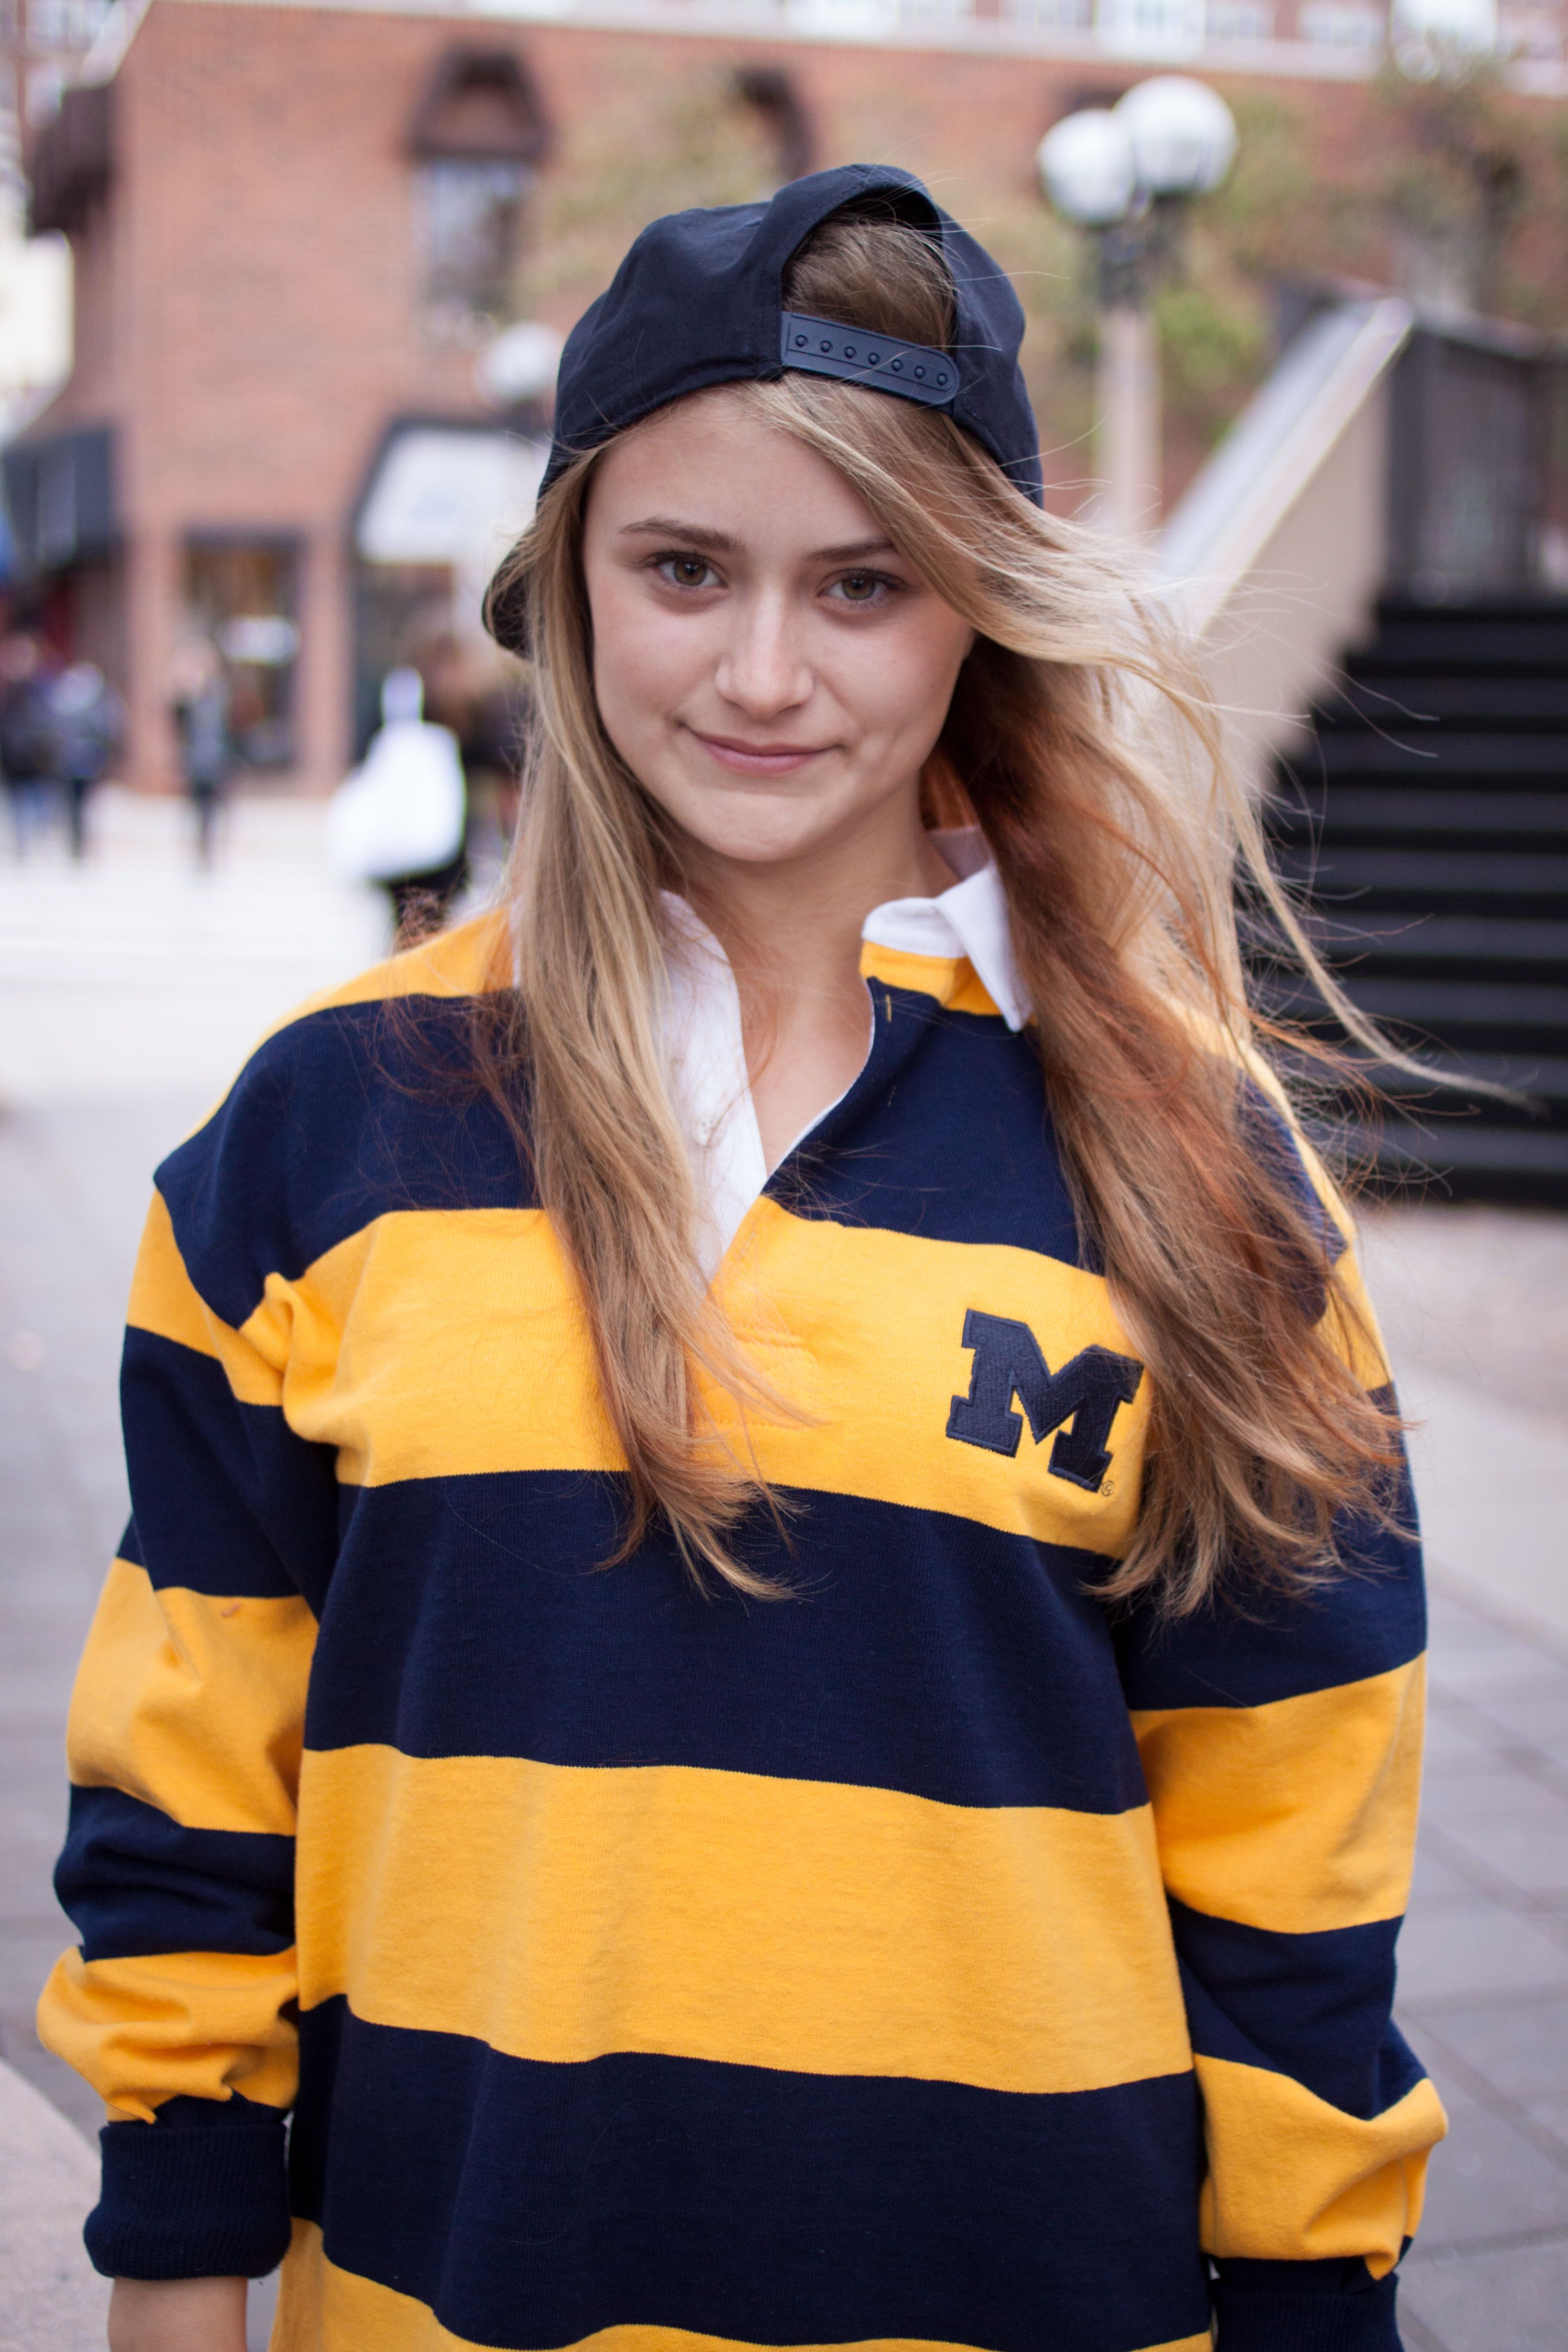 The Michigan Rugby is a great sweatshirt alternative keeping you